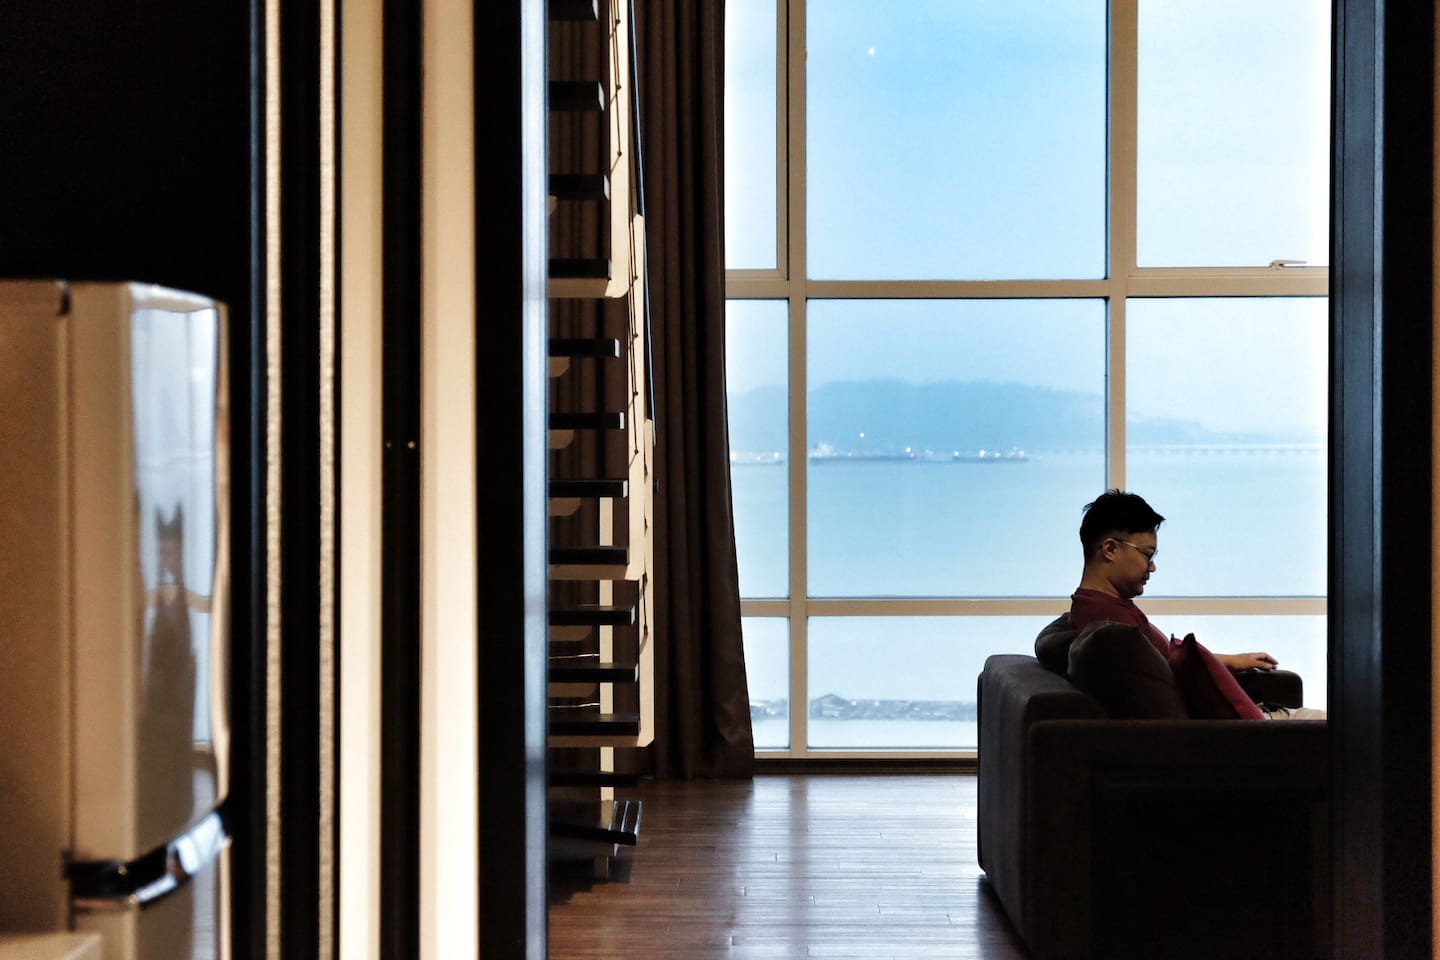 Welcome by the most awesome seaview apartment in Penang, you will be amazed by the double volume window facade. The sunrise view is extremely beautiful!